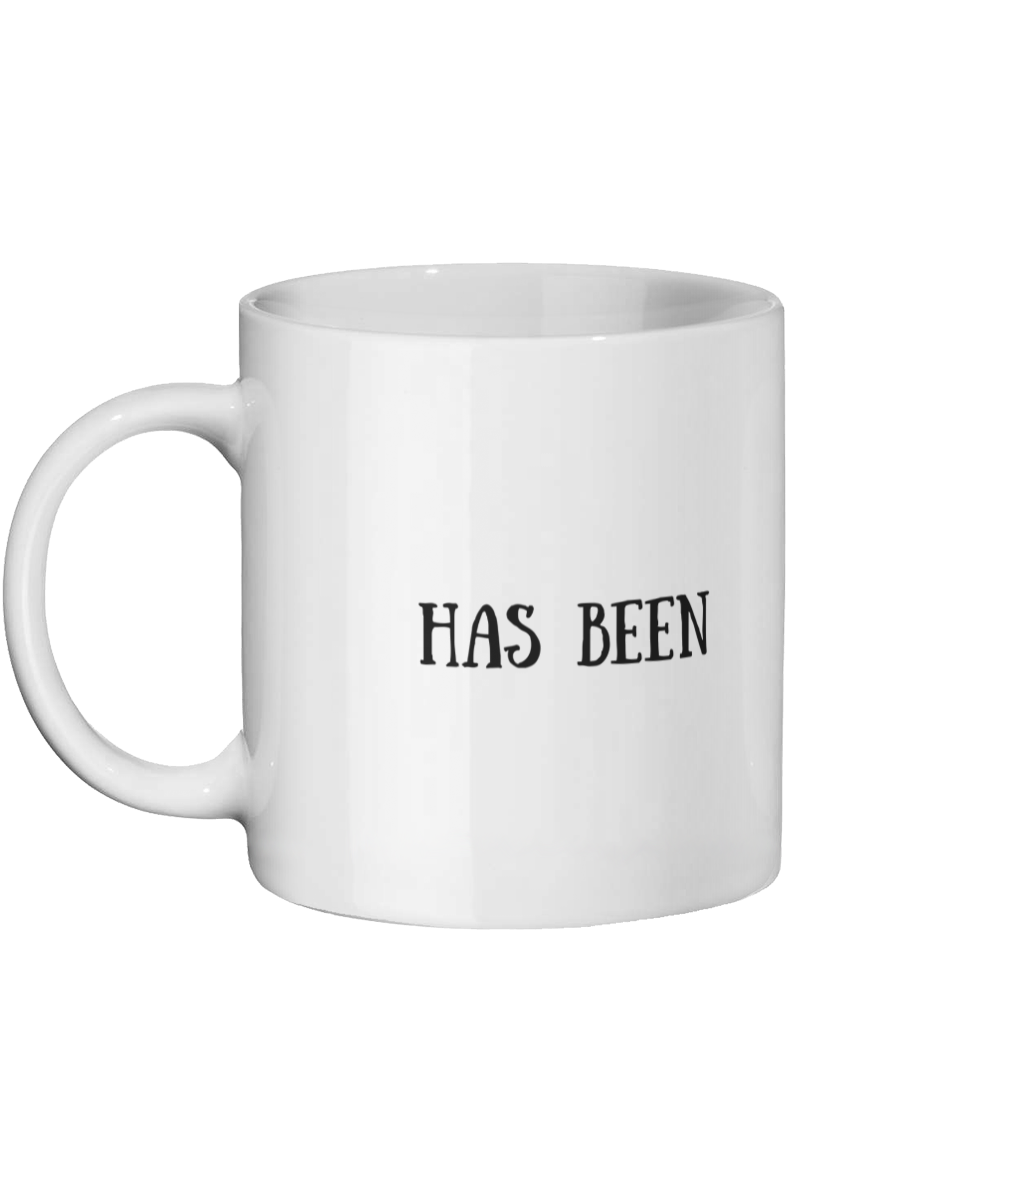 Has Been Mug Left-side